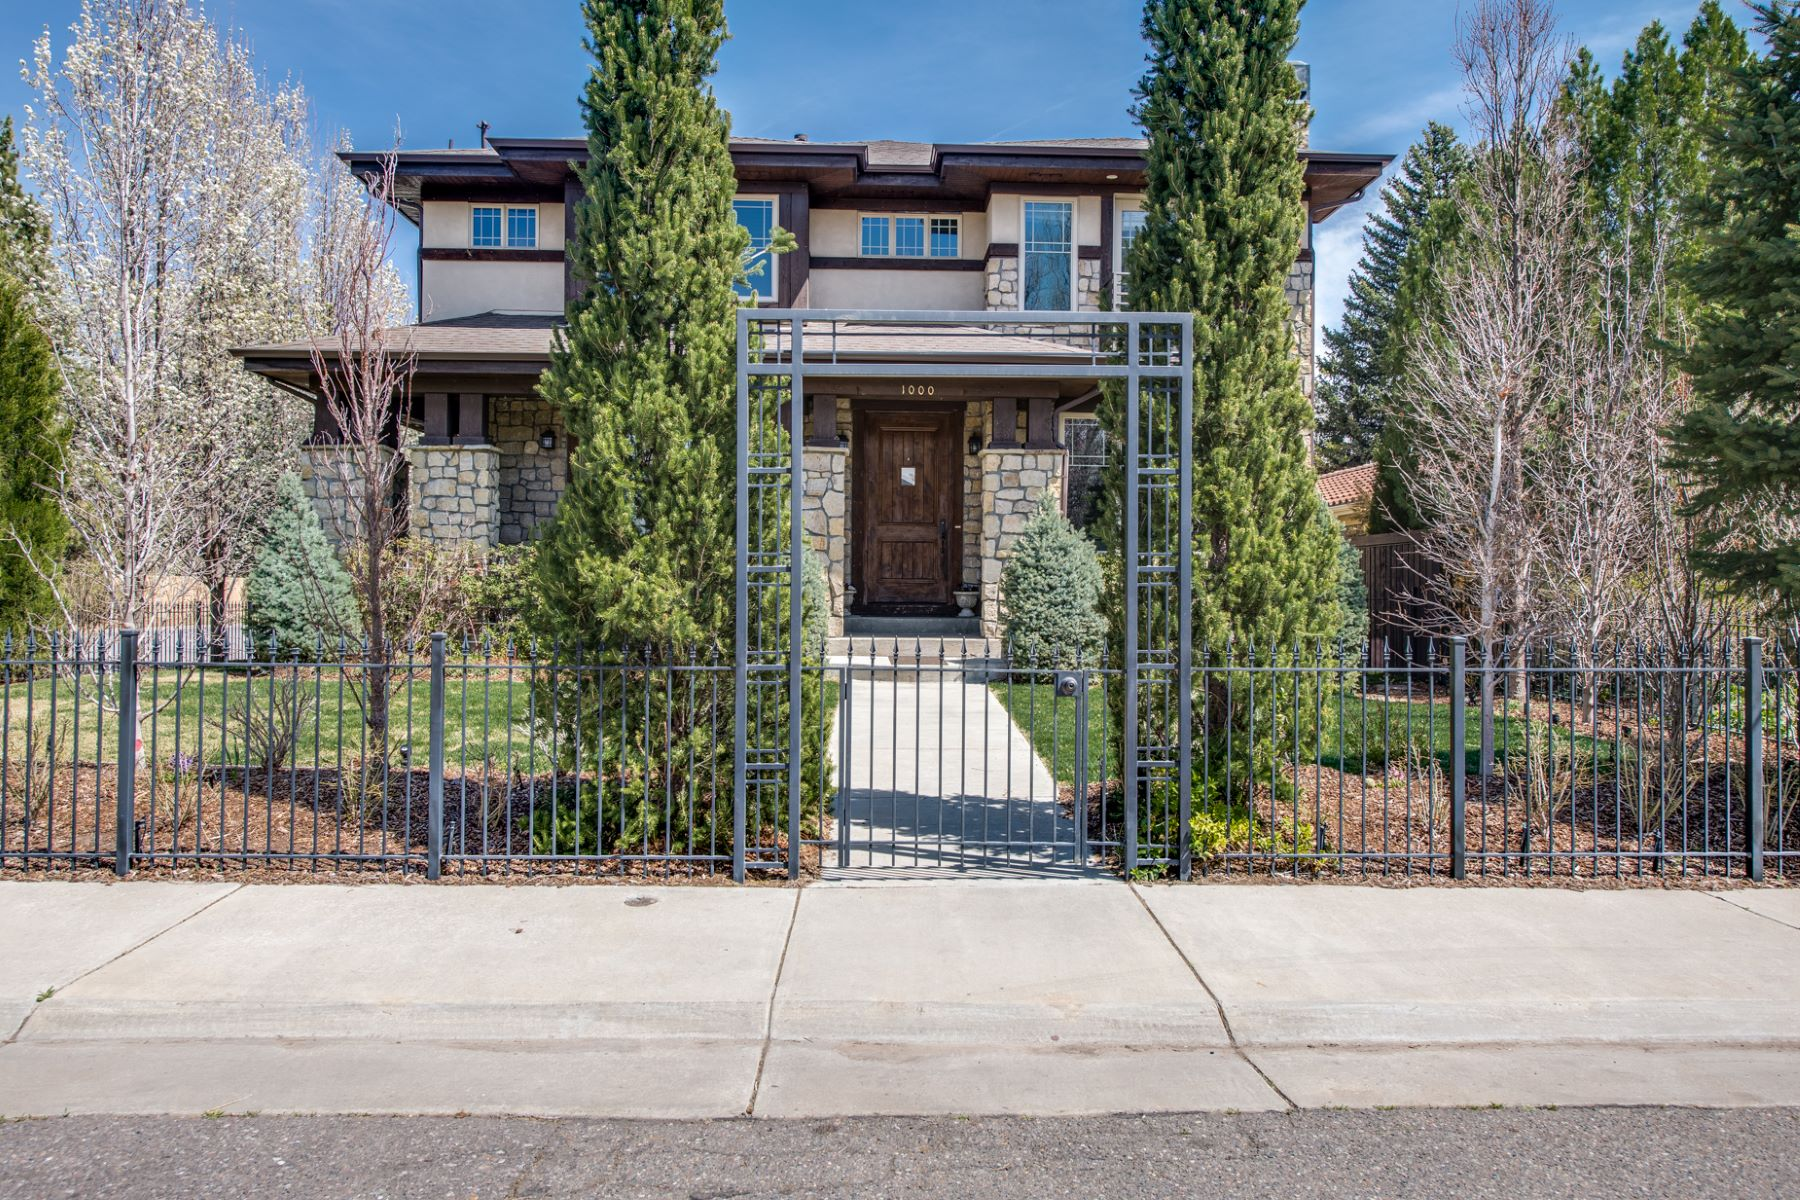 Single Family Home for Active at 1000 South Cook Street 1000 S Cook St Denver, Colorado 80209 United States